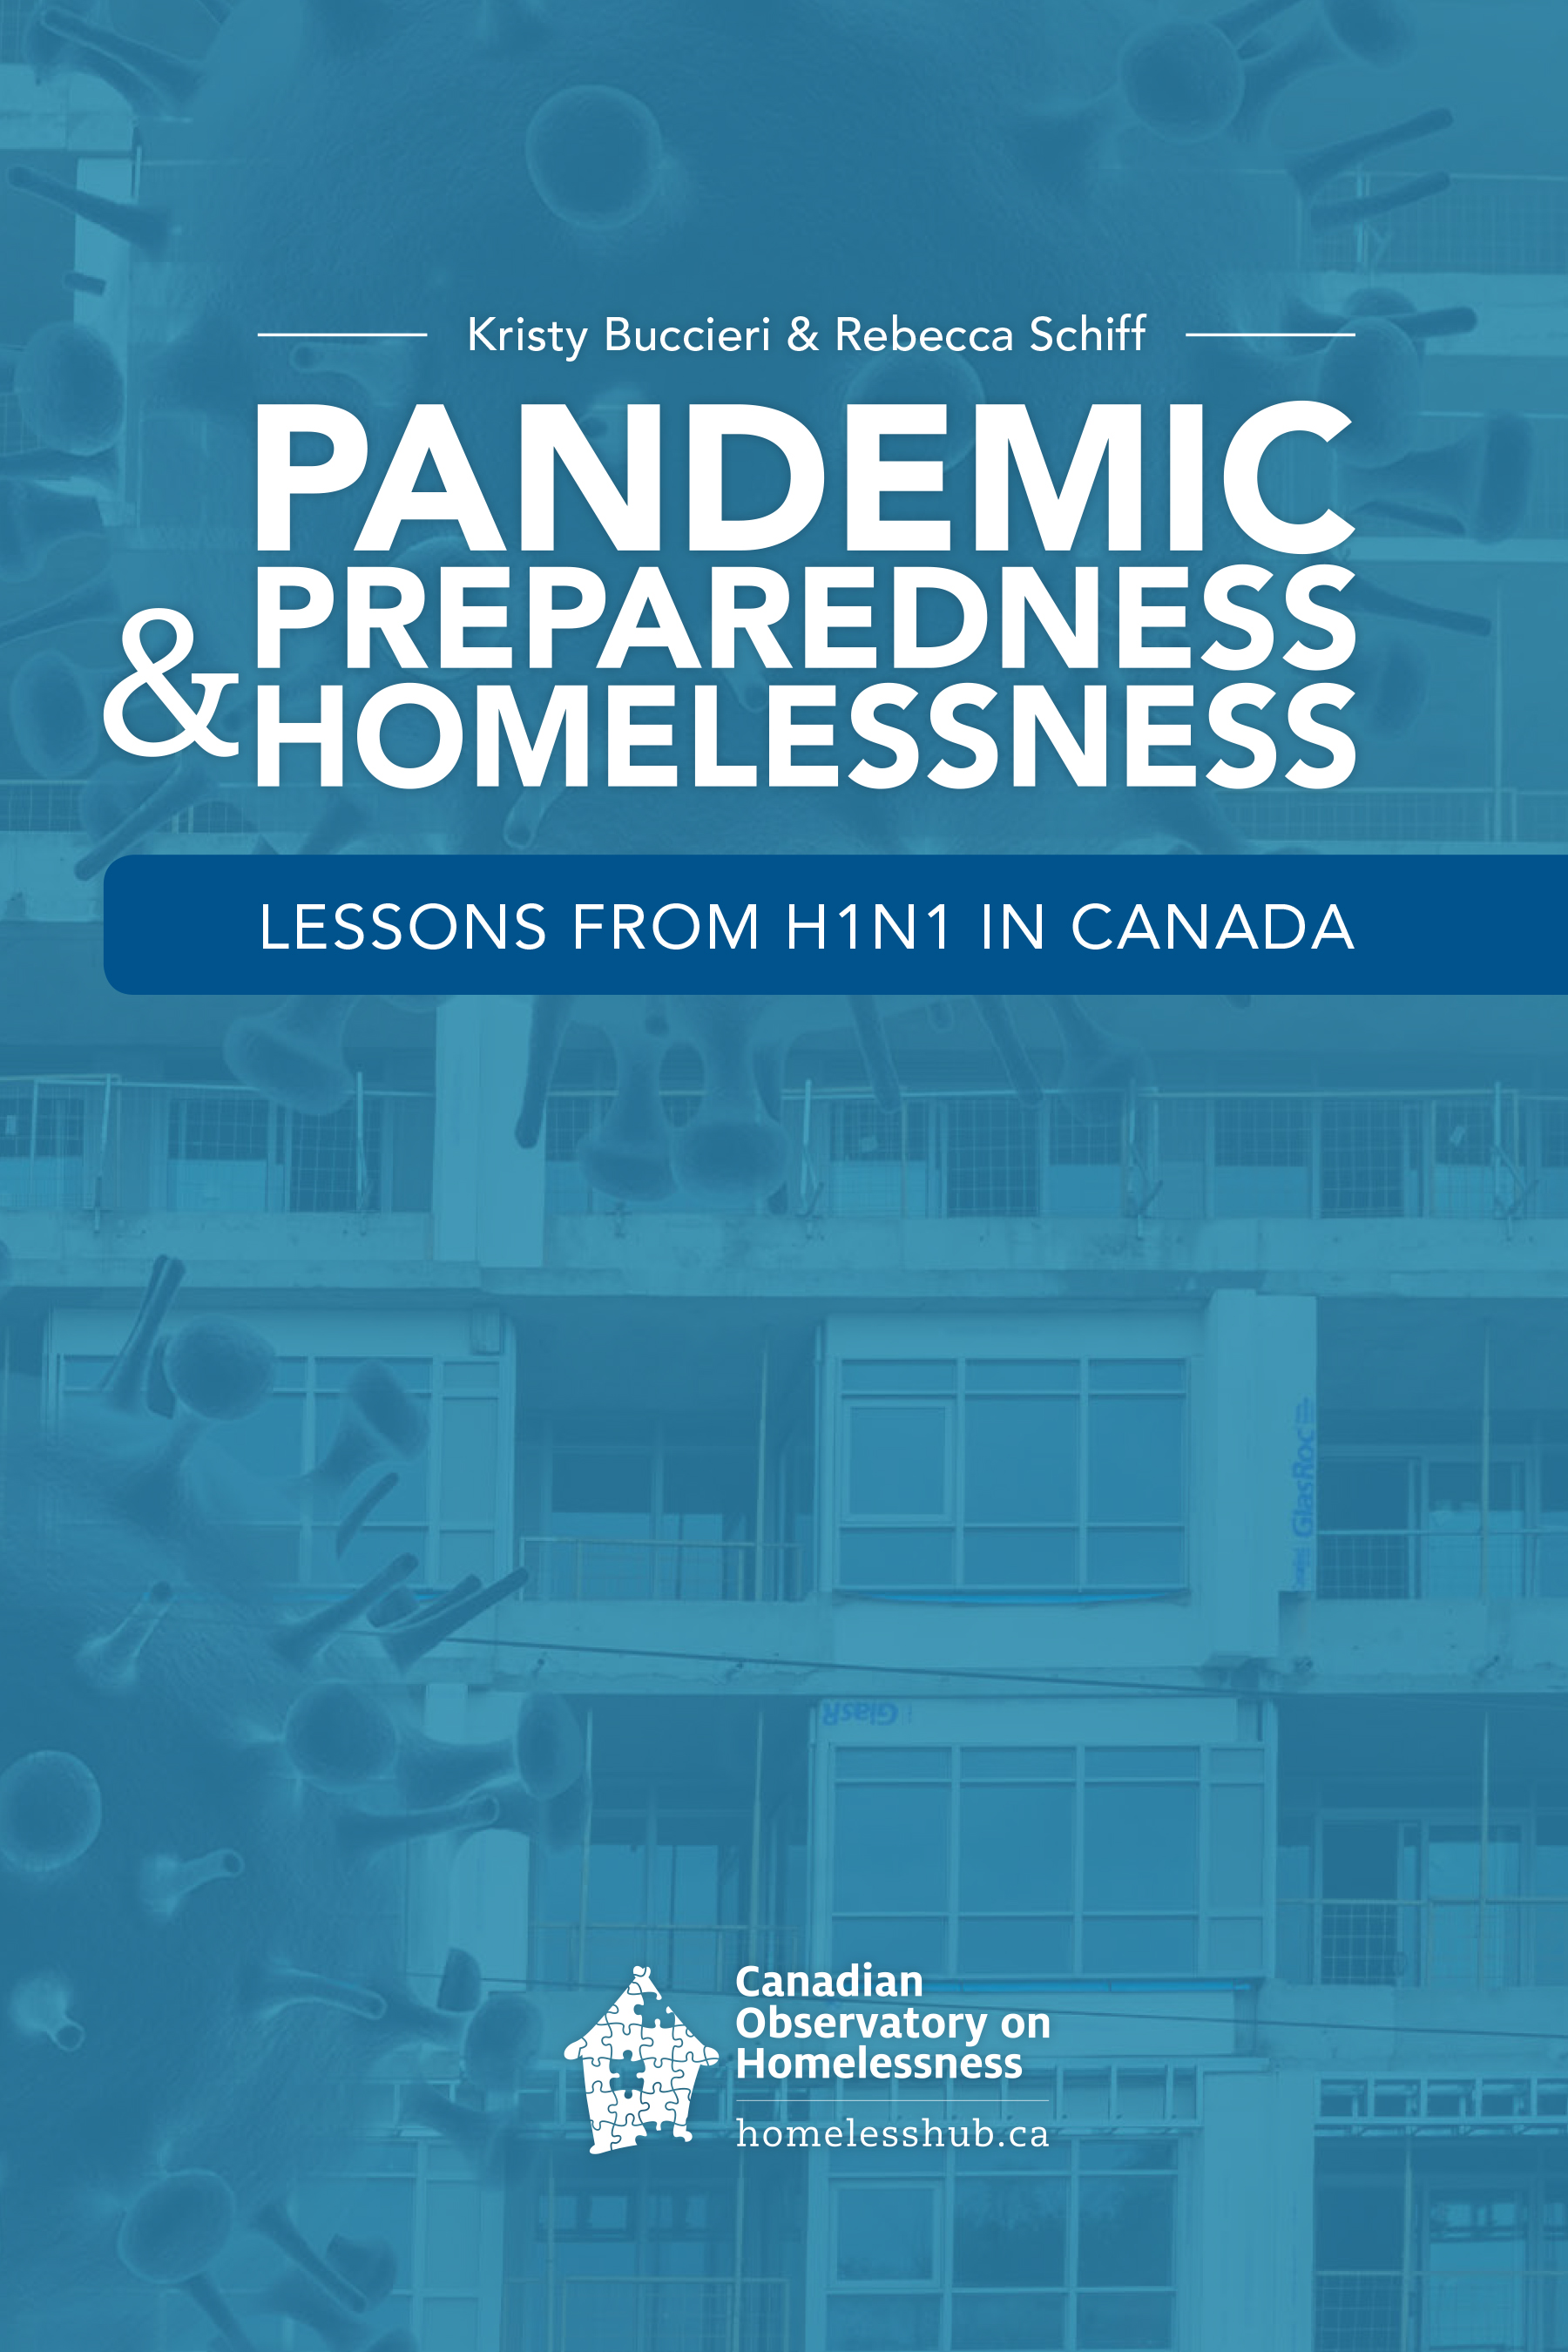 Download the book for free at http://www.homelesshub.ca/lessonsfromH1N1